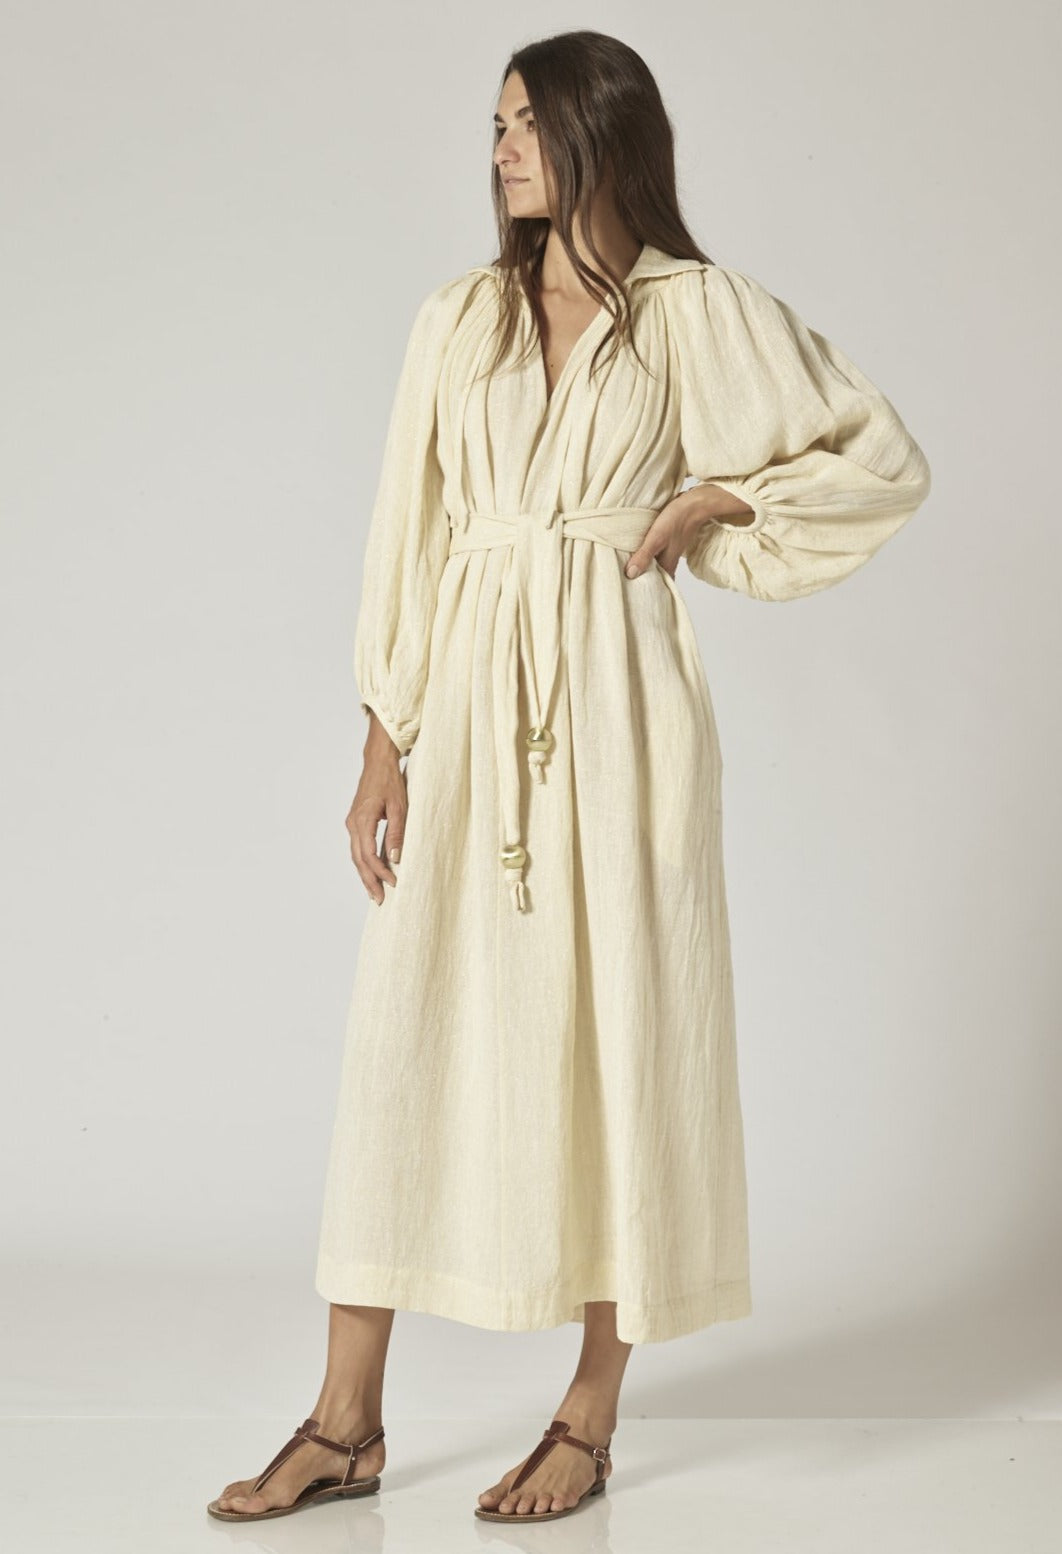 POET NATURAL METALLIC GAUZE DRESS